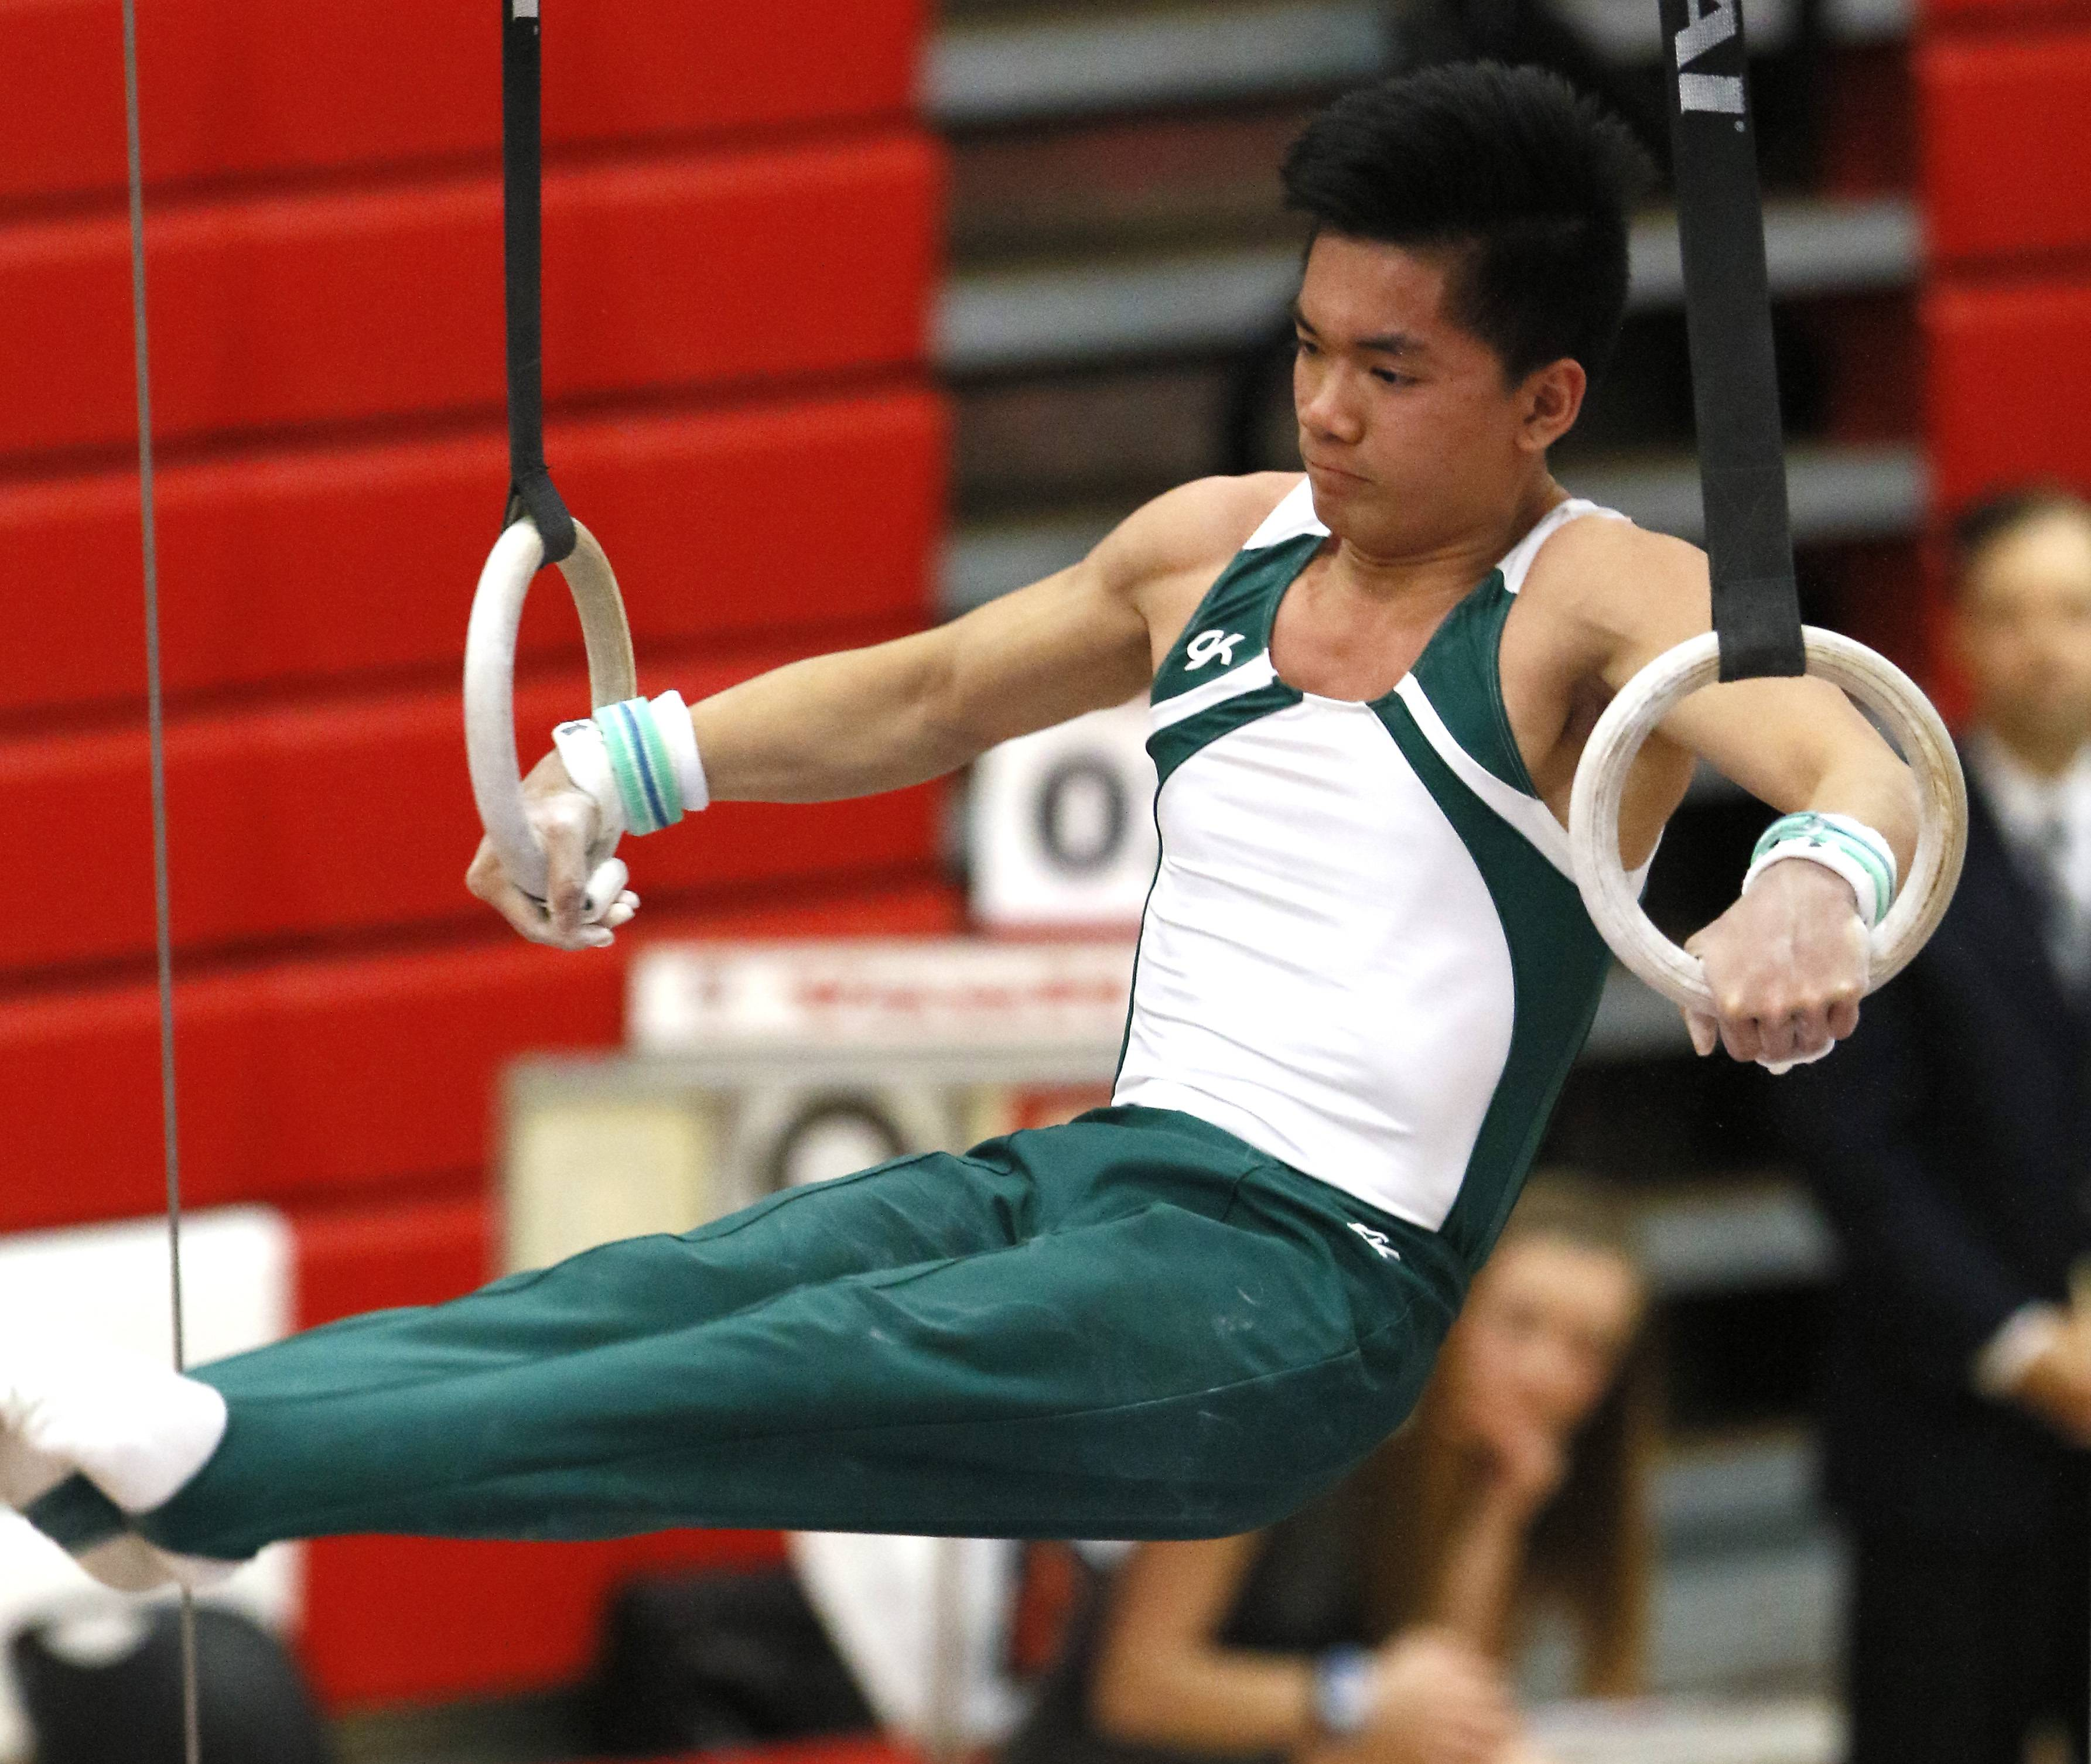 Glenbard West's Frankie Pham performs his still rings routine, Saturday, during the IHSA boys state gymnastics finals at Hinsdale Central High School.